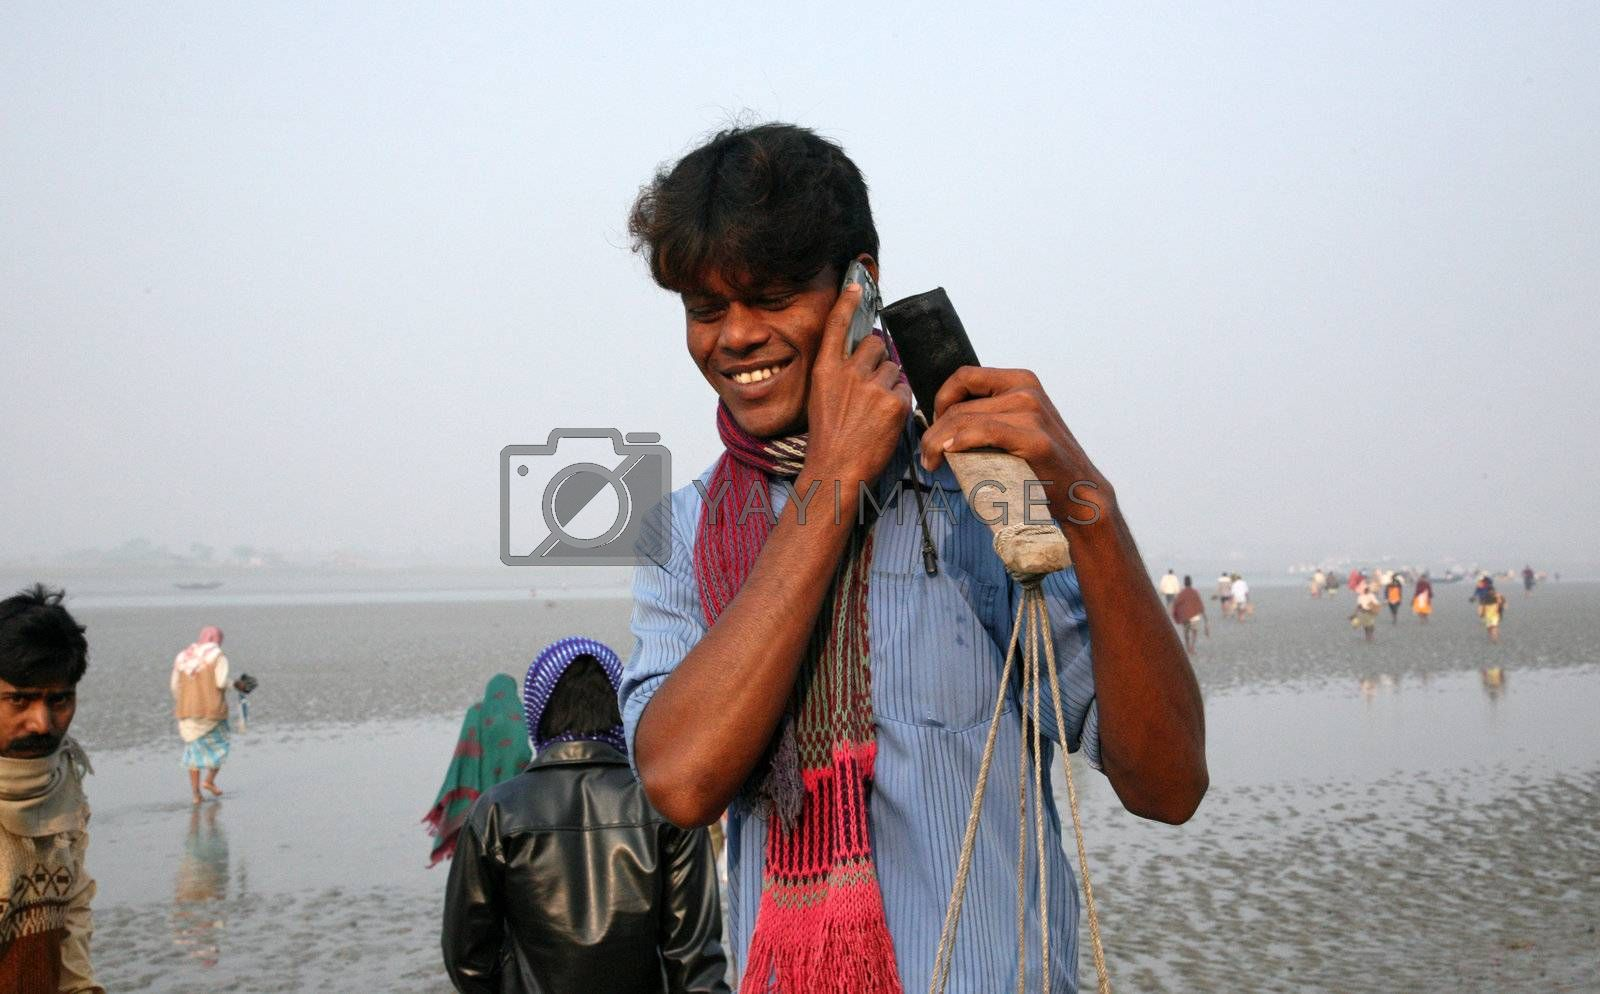 SUNDARBANS, WEST BENGAL, INDIA - JANUARY 17: The signal of mobile phone covers and most remote parts of the Sundarbans jungles, West Bengal, India on January 17, 2009.